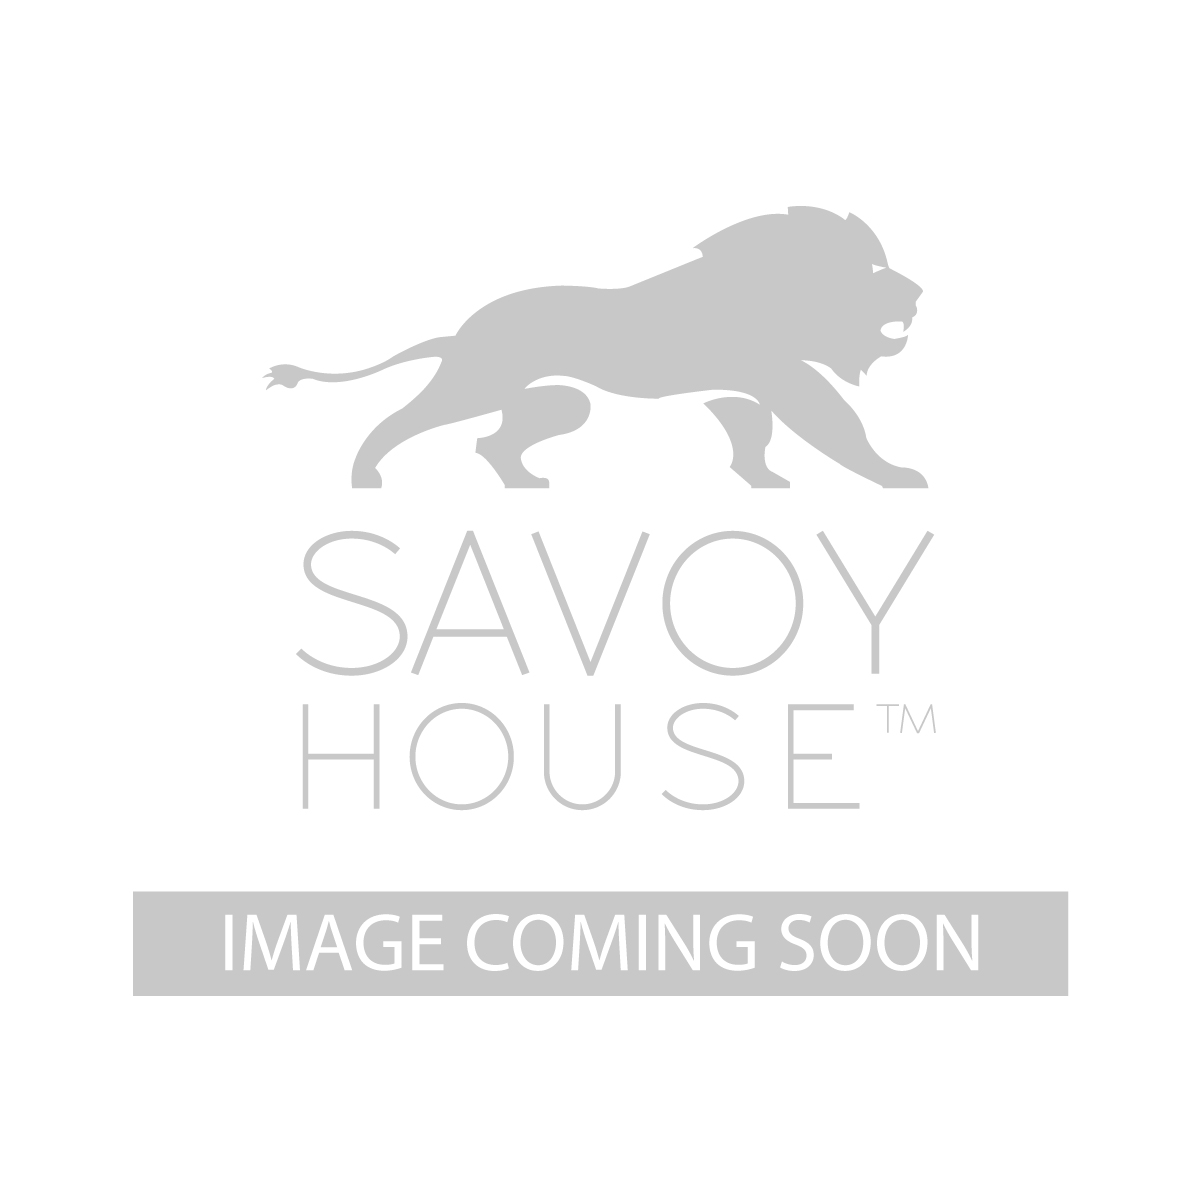 7 6098 12 322 marly 12 light chandelier by savoy house marly 12 light chandelier aloadofball Images